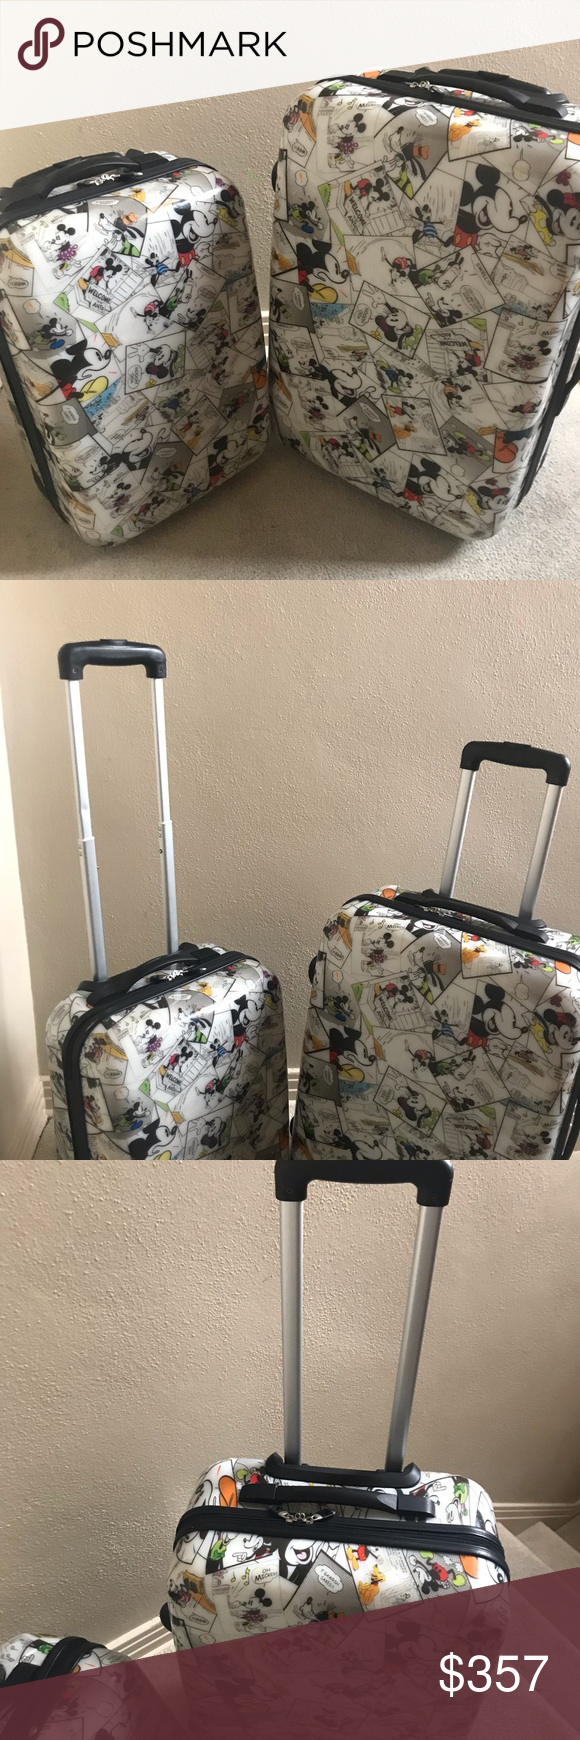 82b21ca9c03 Rare htf Mickey Mouse comic two piece luggage set Hard shell rare to find Mickey  Mouse